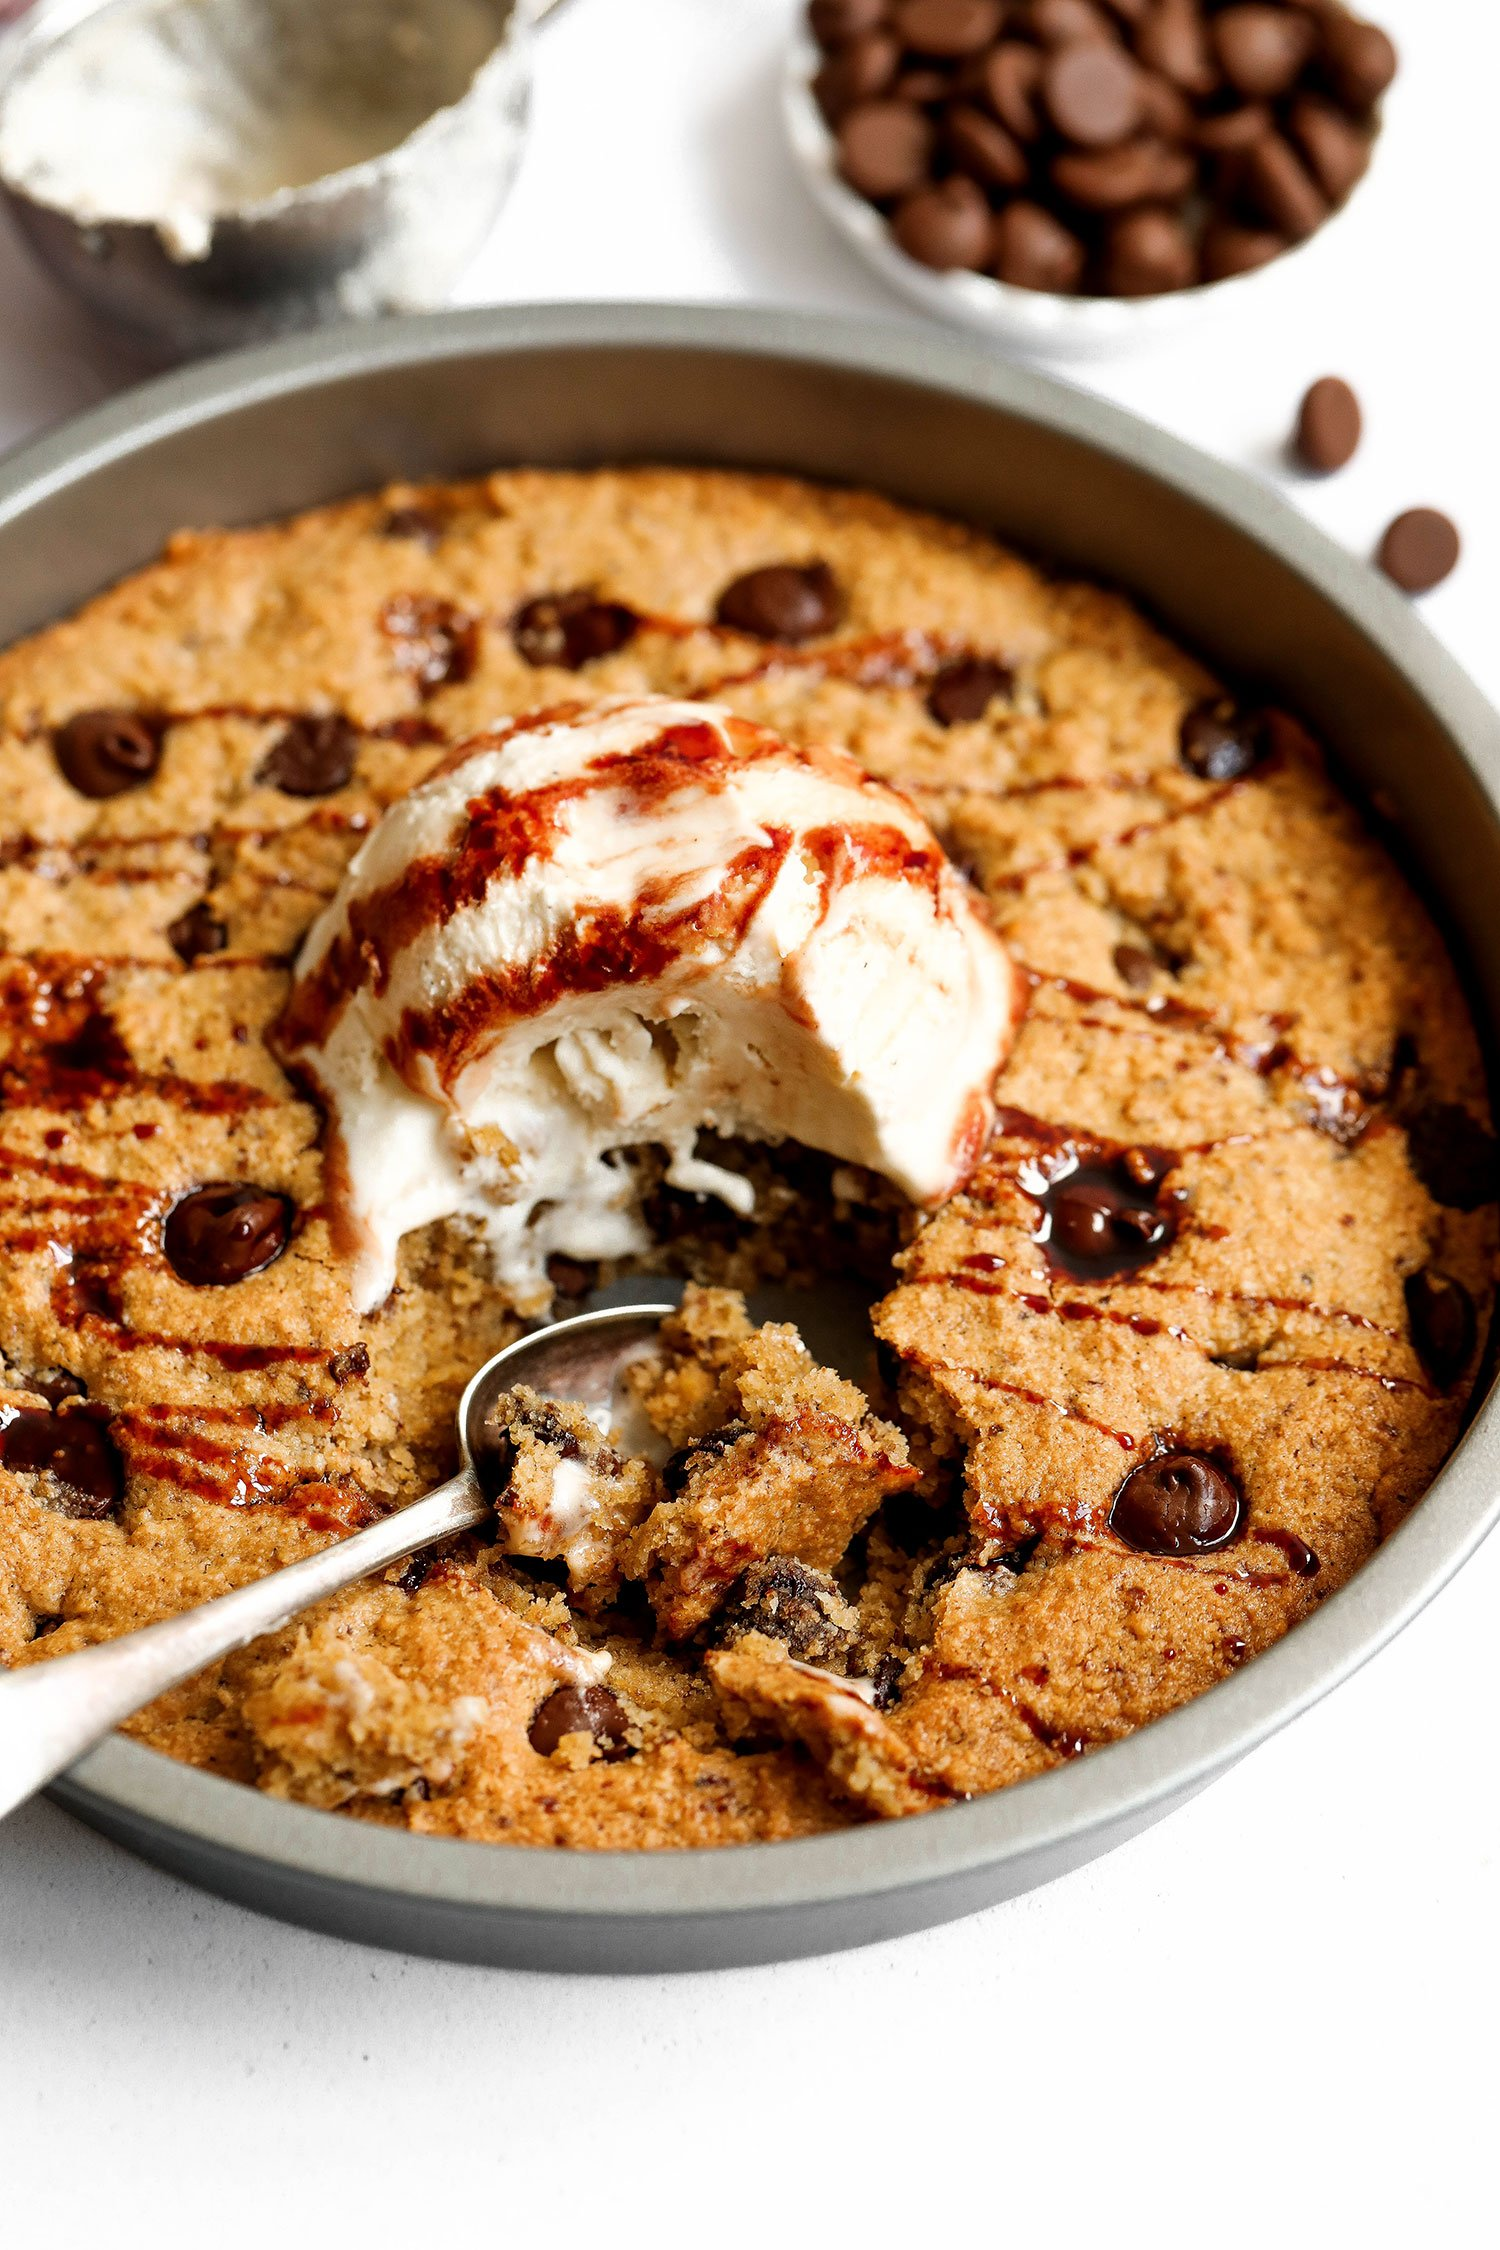 Vegan & Gluten-free Skillet Chocolate Chip Cookie